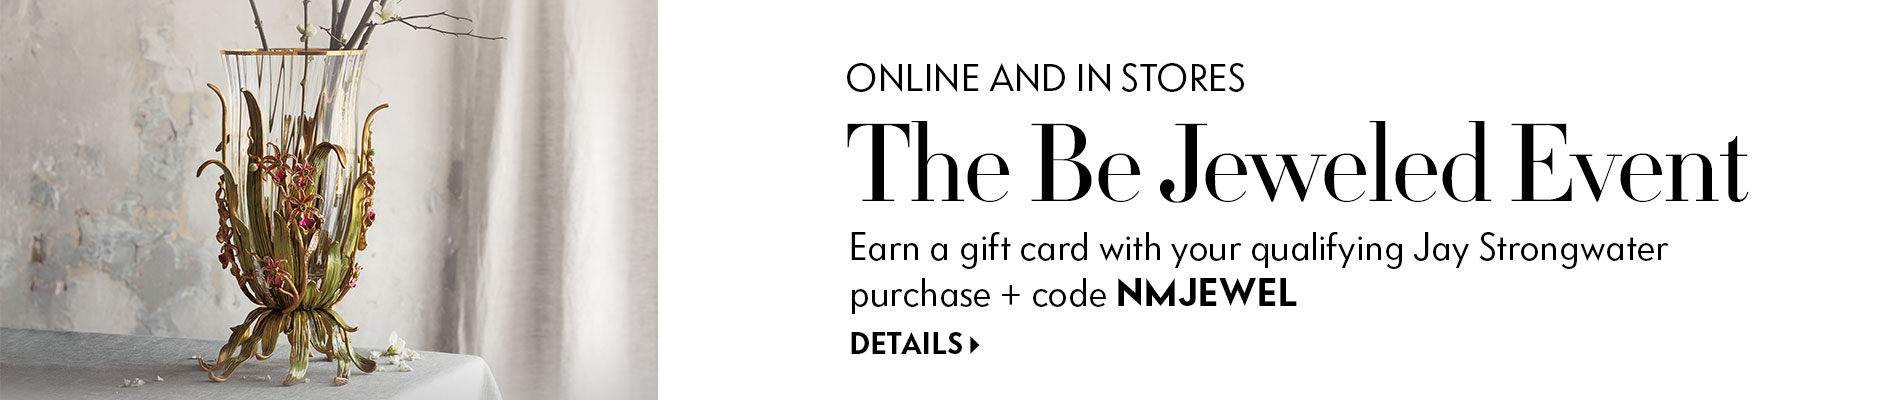 The Be Jeweled Event - Earn a gift card!